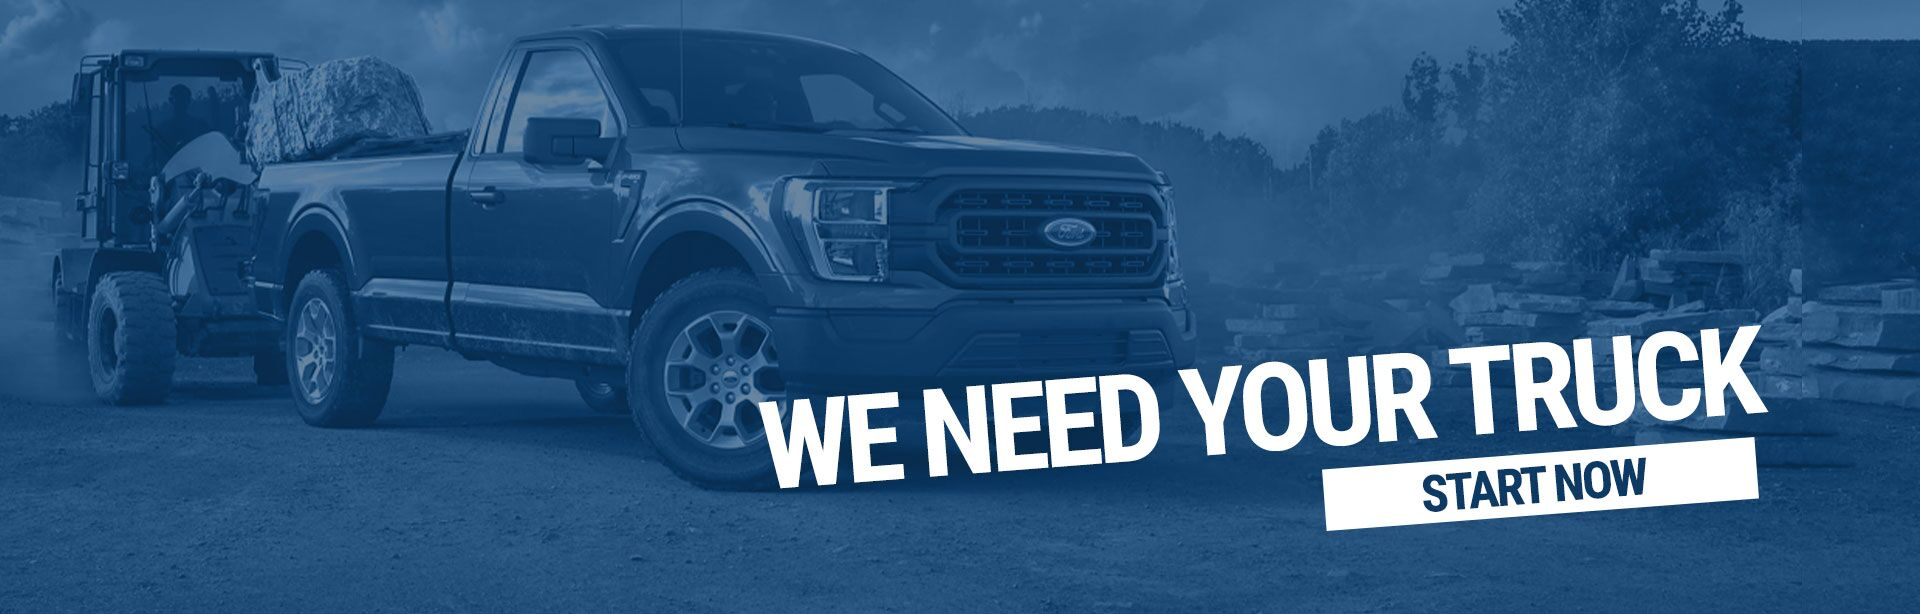 We Need Your Truck